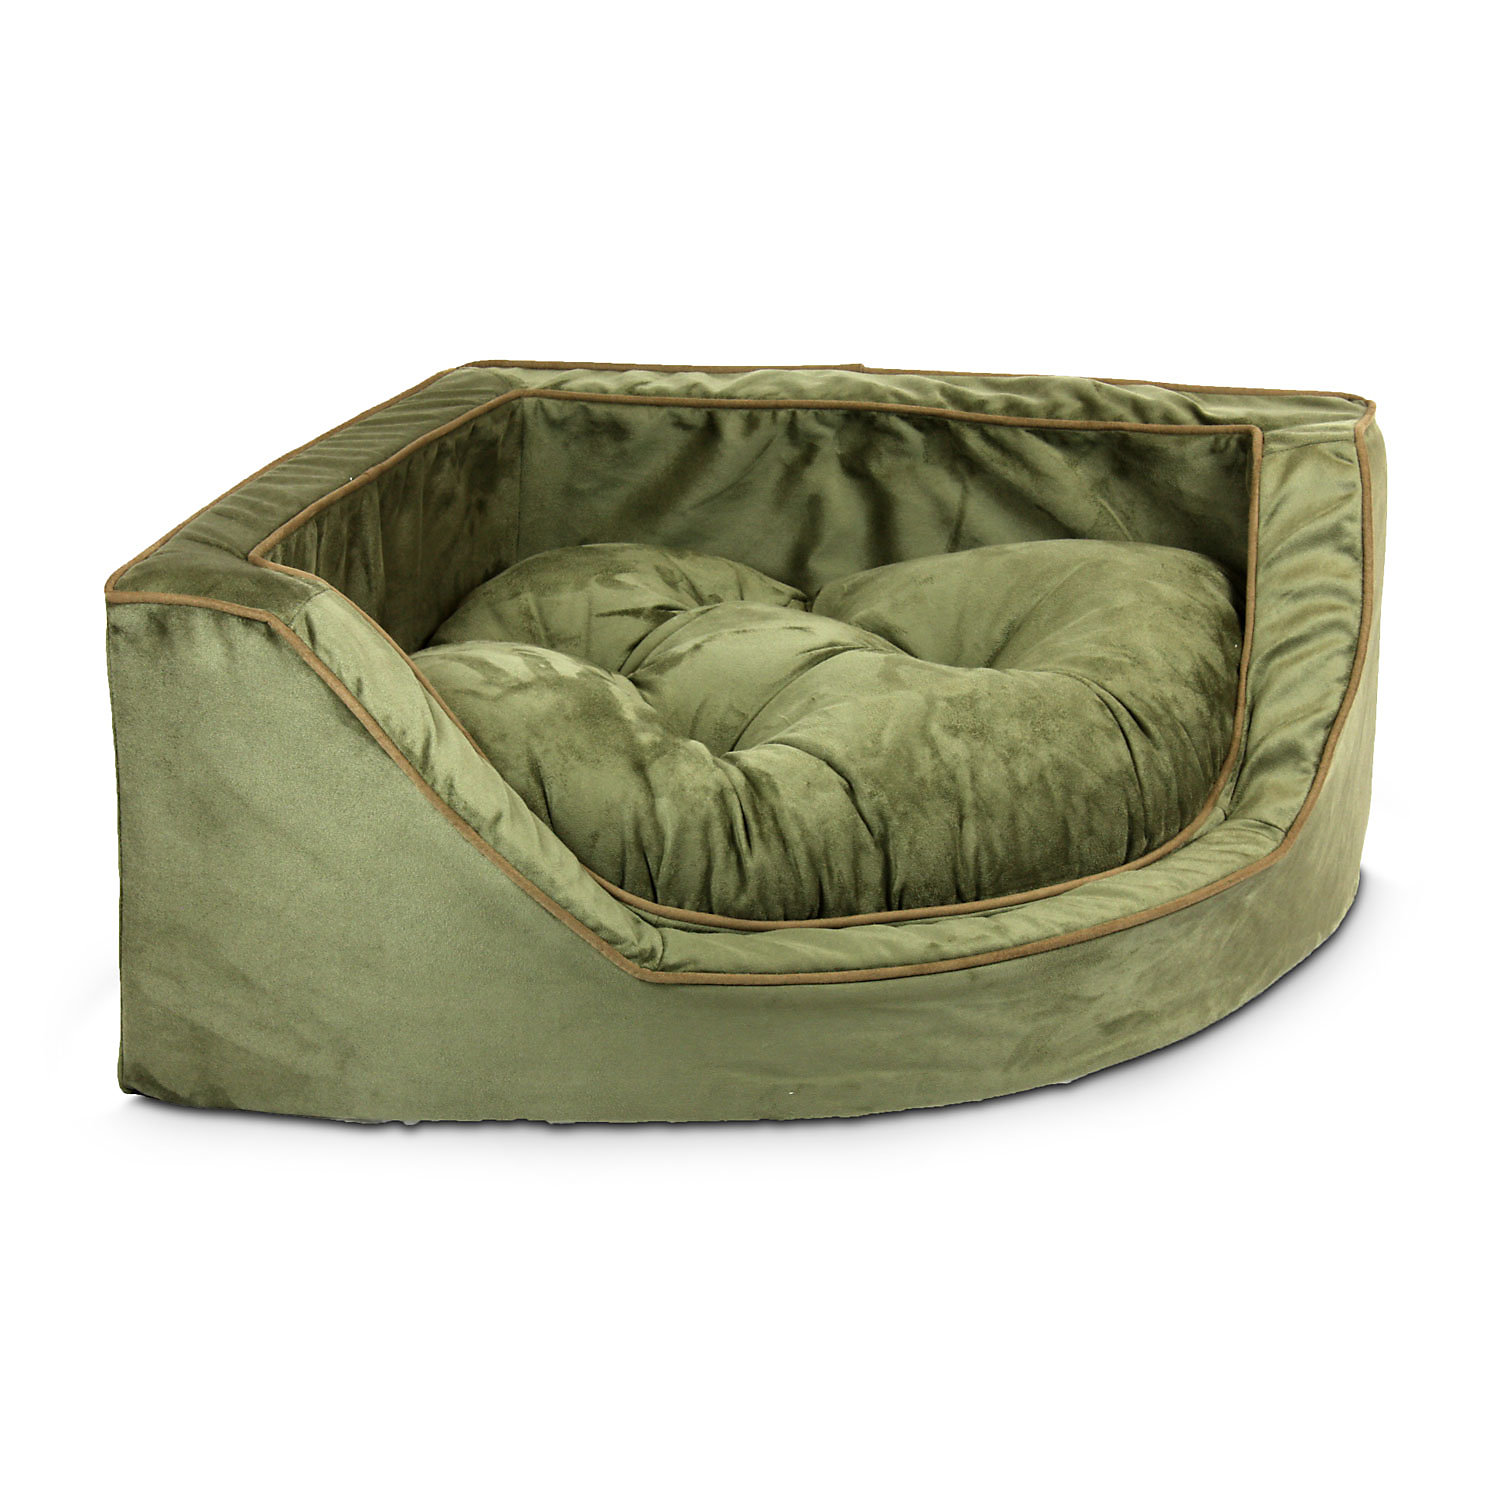 Snoozer Luxury Corner Bed in Olive with Coffee Cording 29 L x 29 W Large Green  Brown